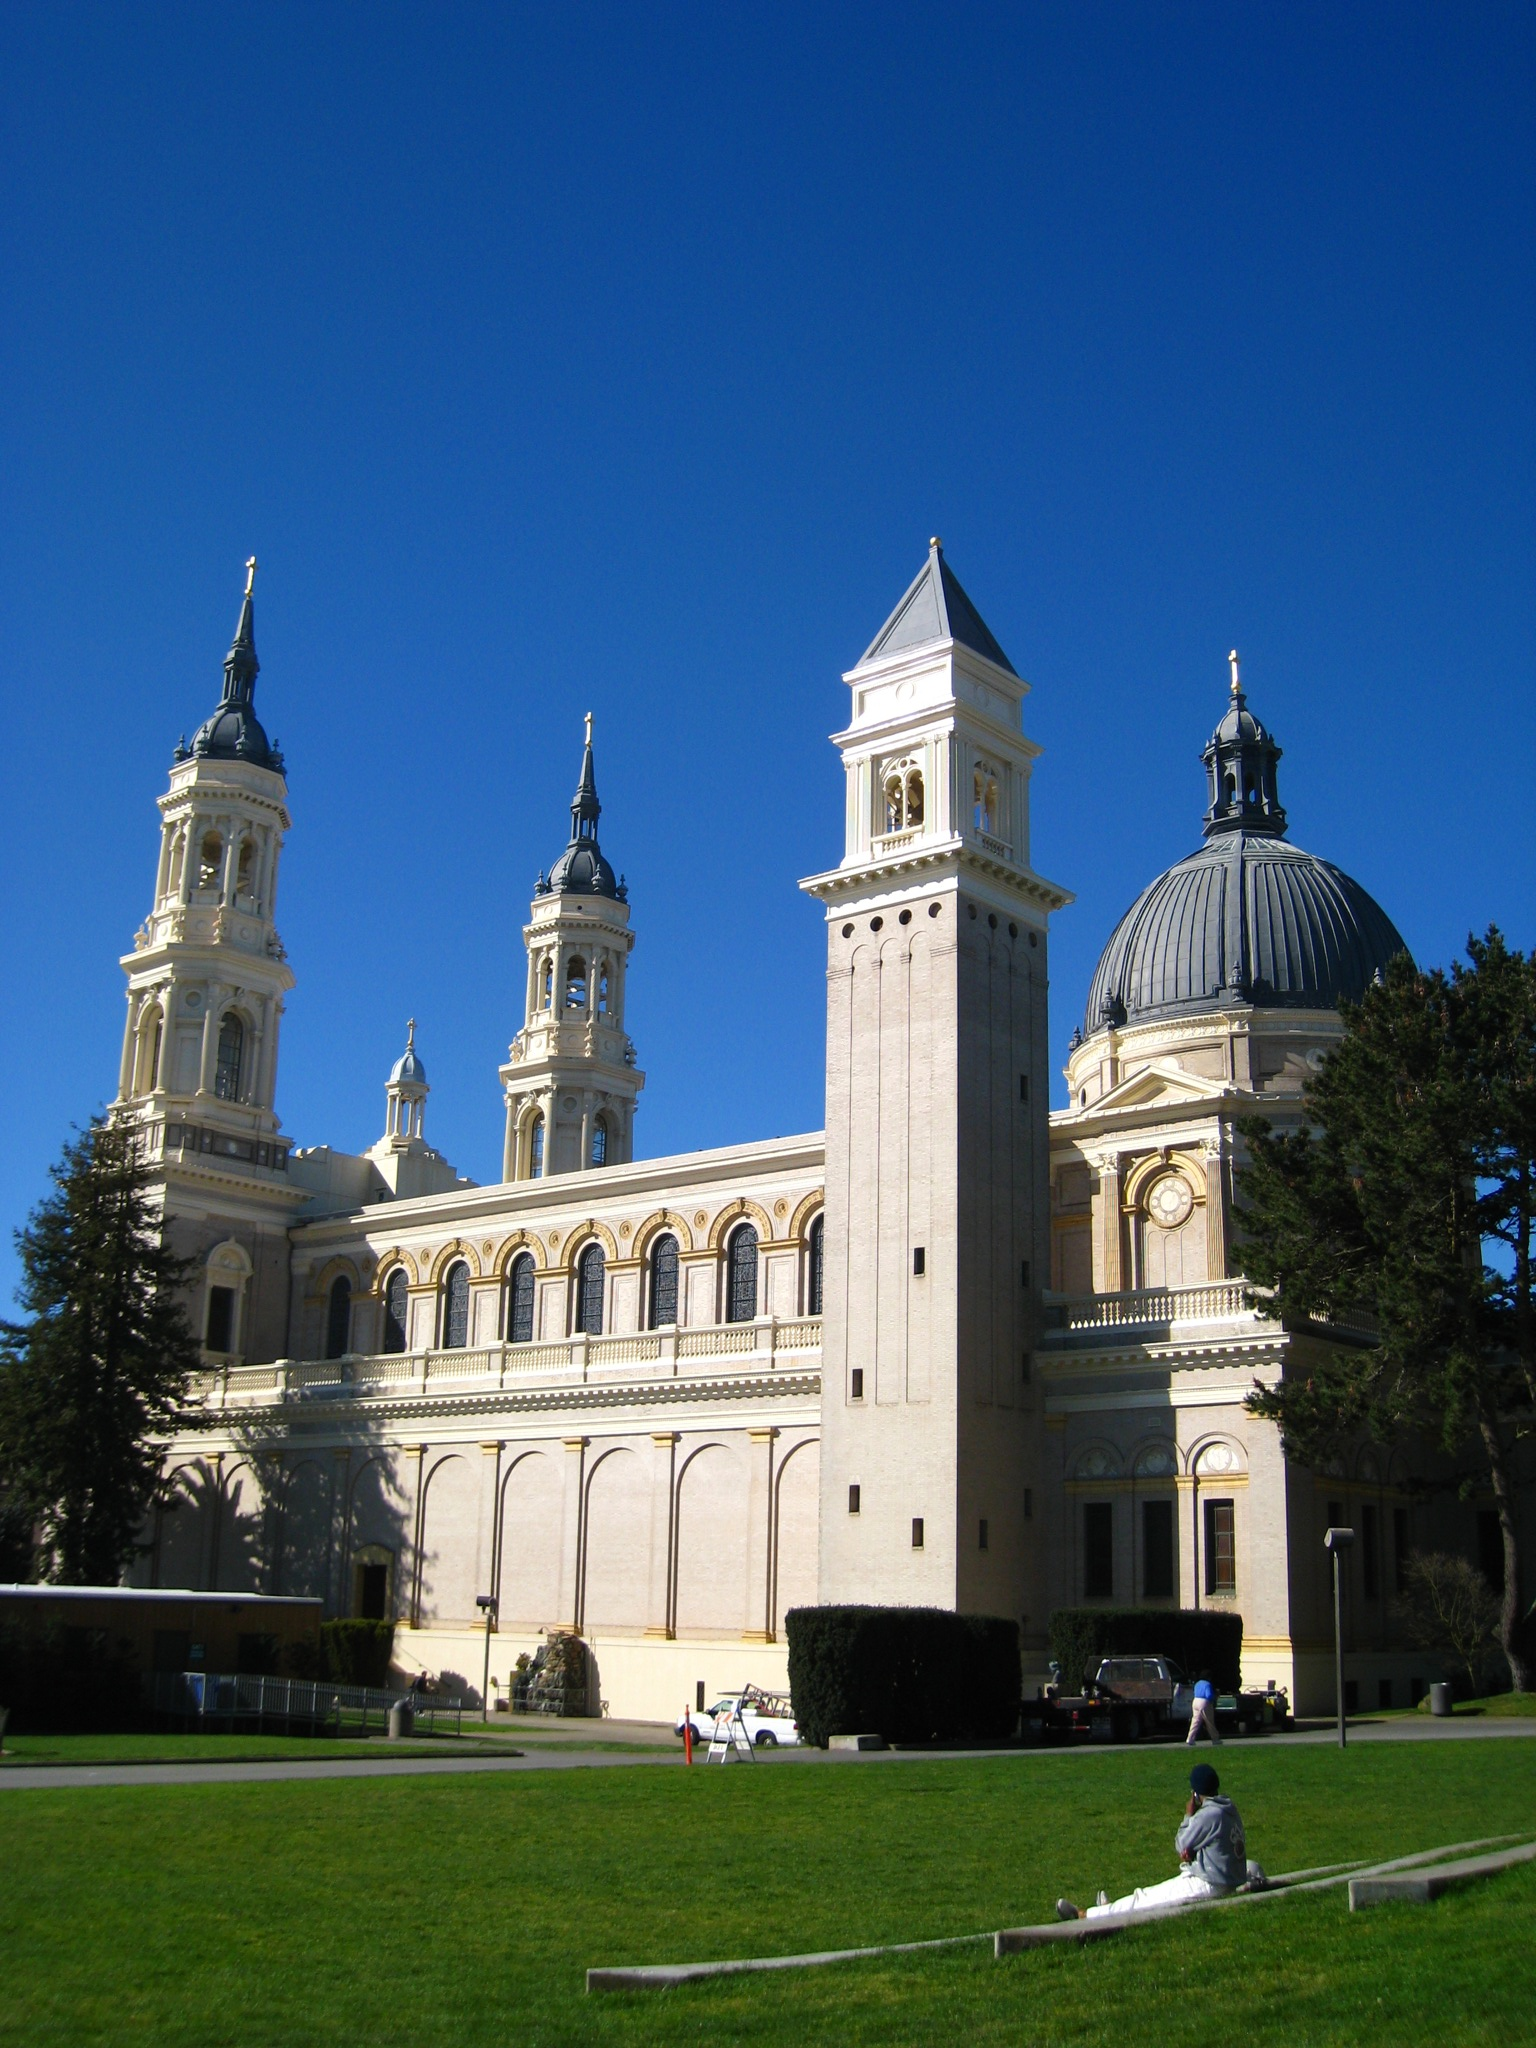 file saint ignatius church university of san francisco left side  file saint ignatius church university of san francisco left side view jpg